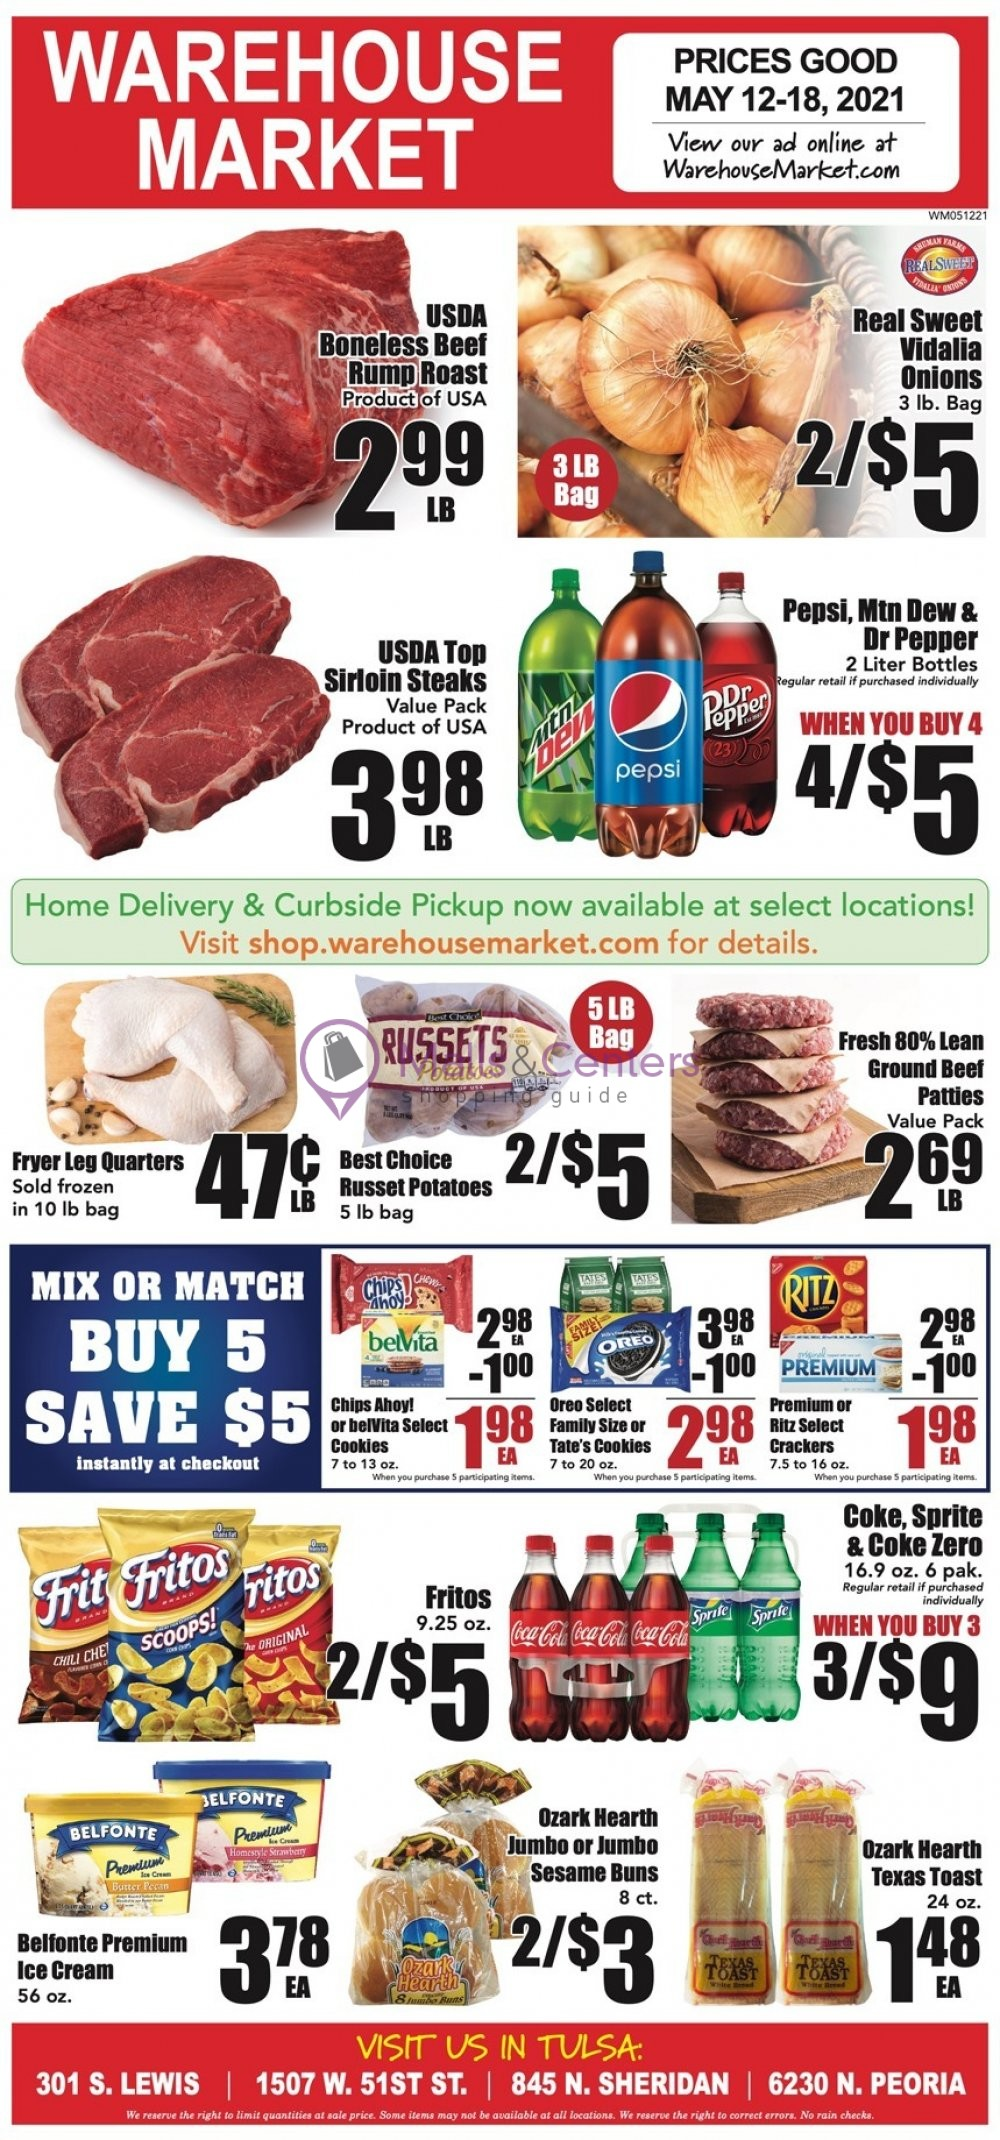 weekly ads Warehouse Market - page 1 - mallscenters.com